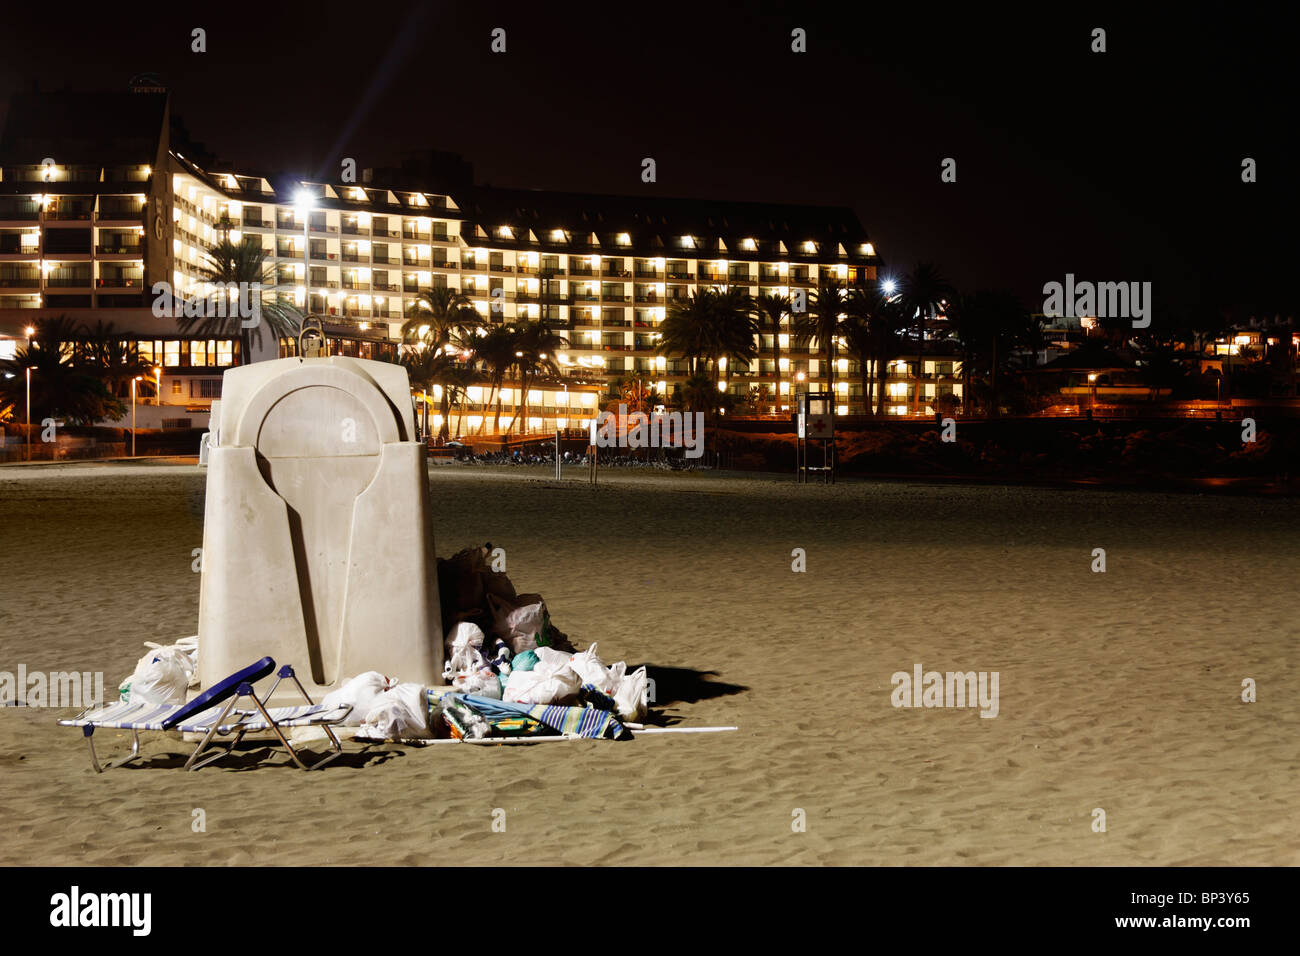 Overflowing rubbish container on beach in Spain with large hotel in background - Stock Image